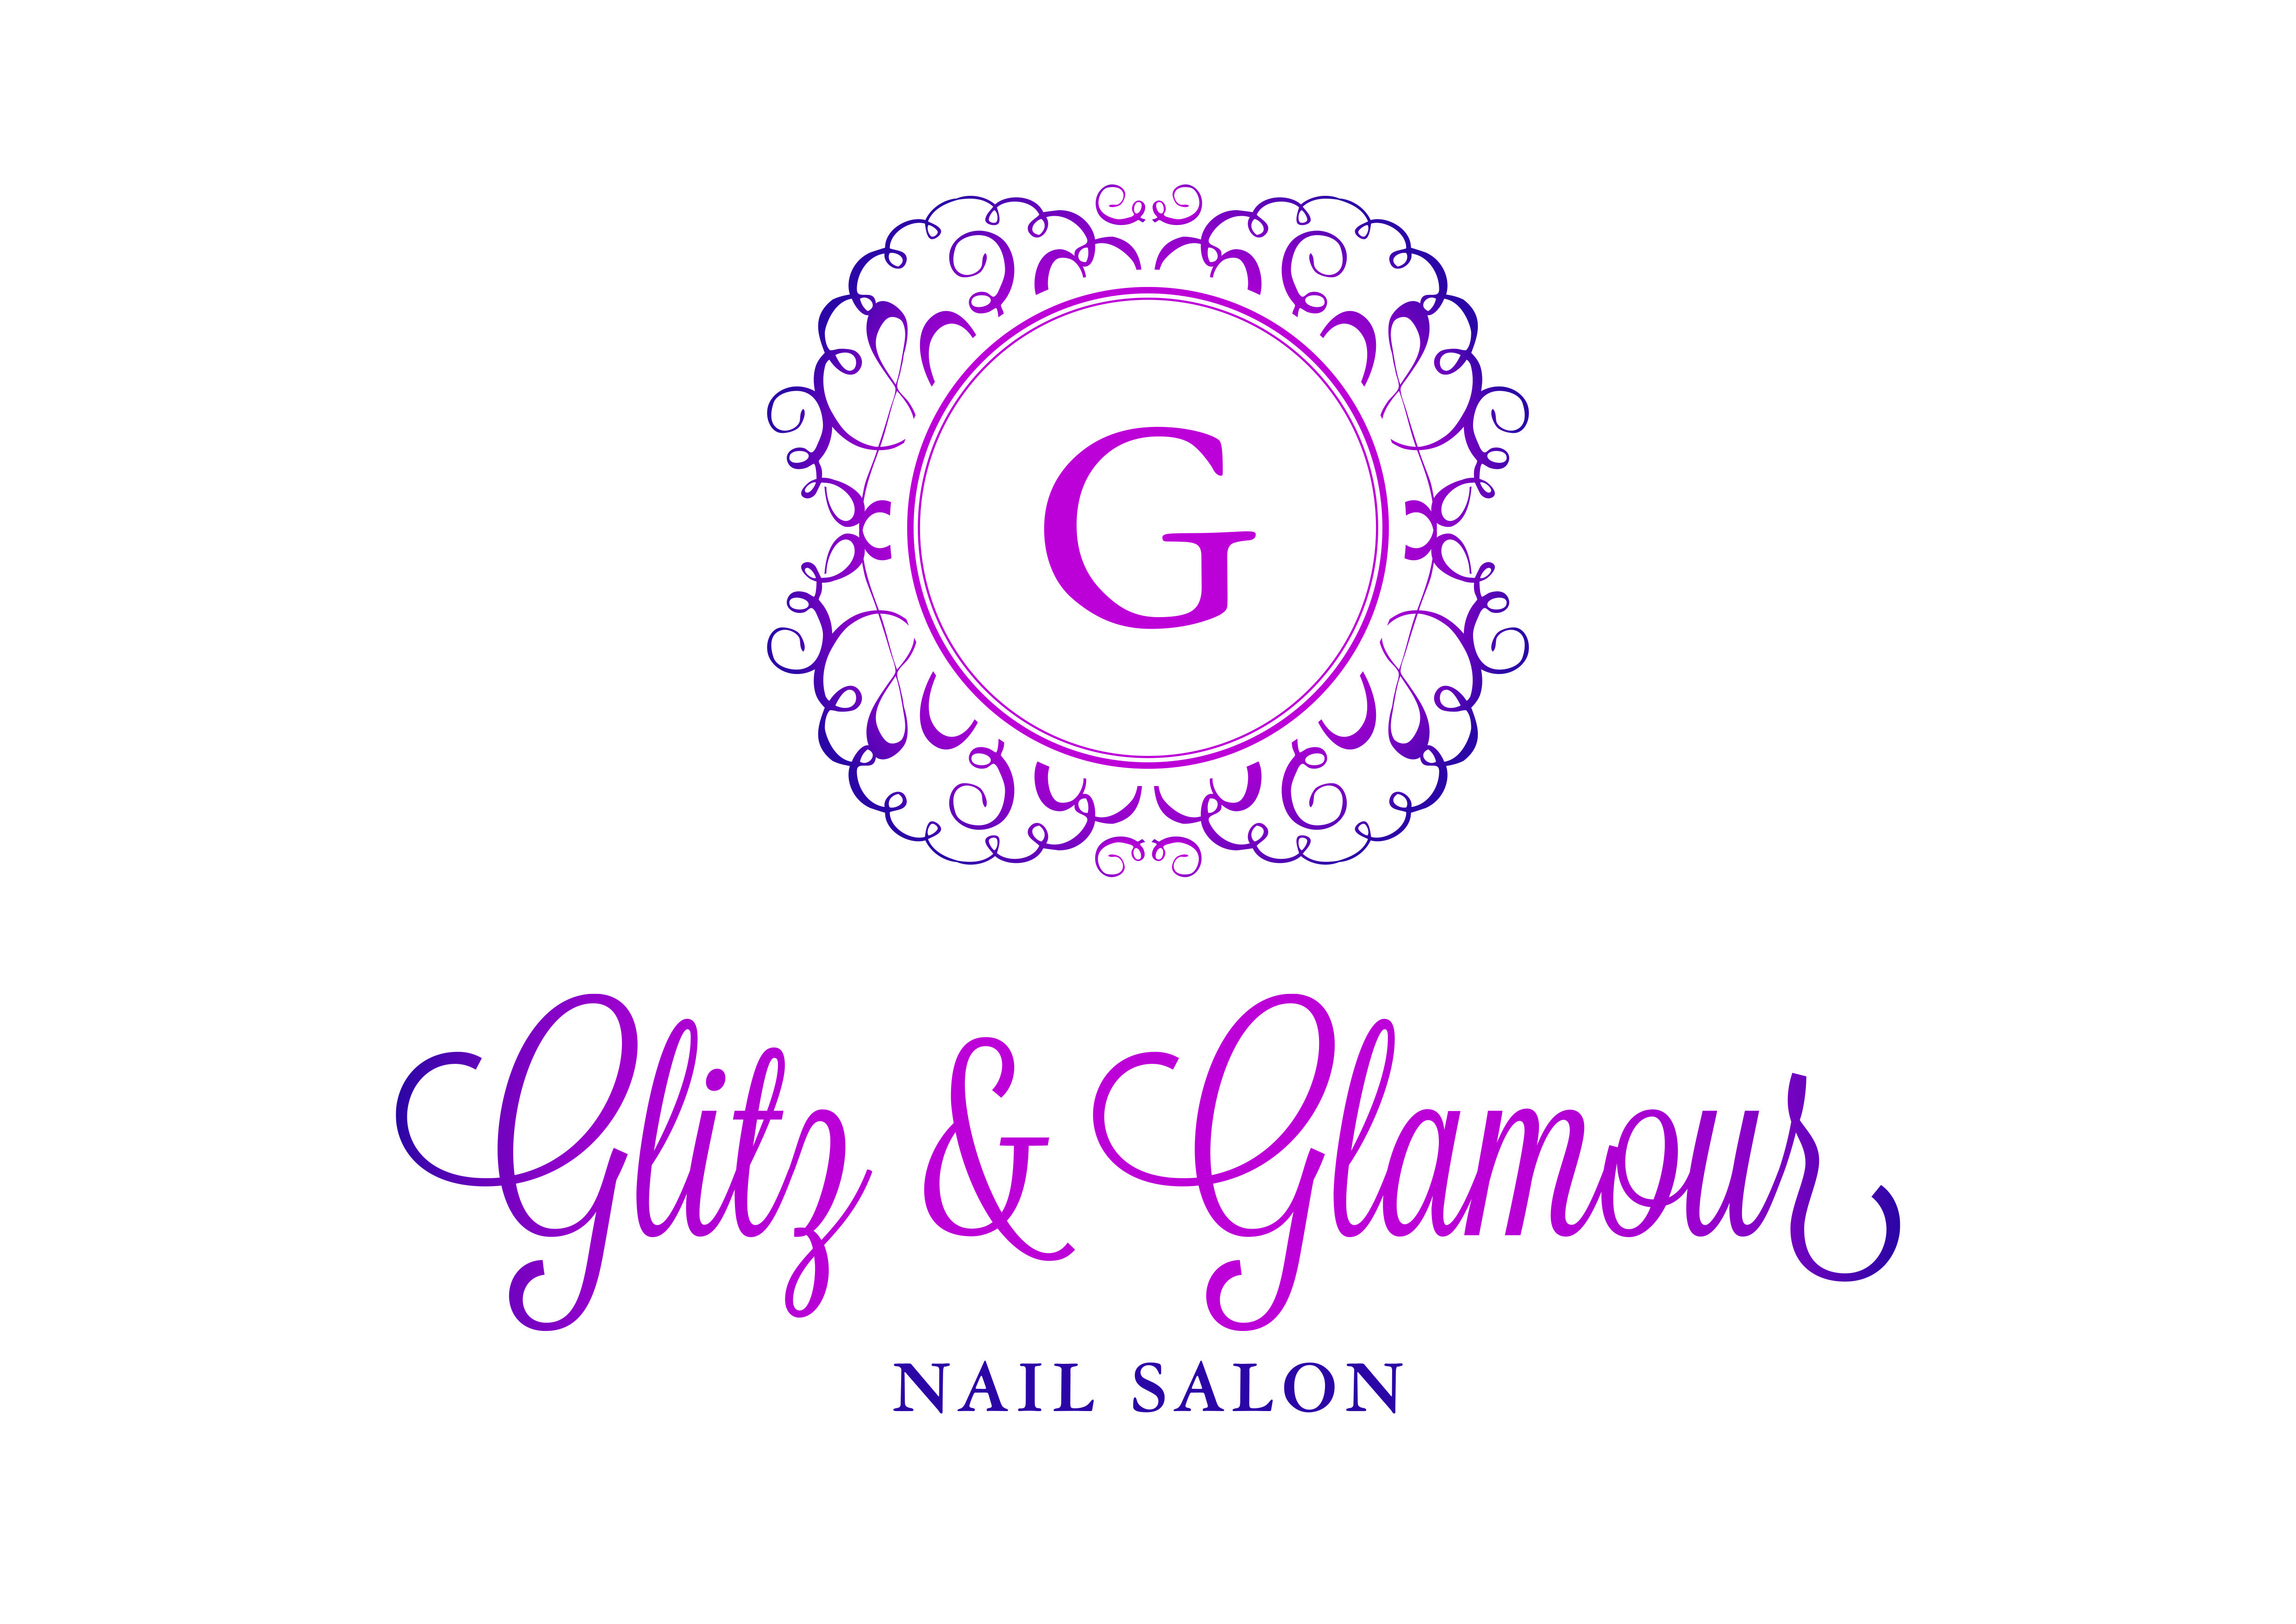 Logo Design For Nail Salon Glitz And Glamour Created By Imagine If Creative Studios Alysha